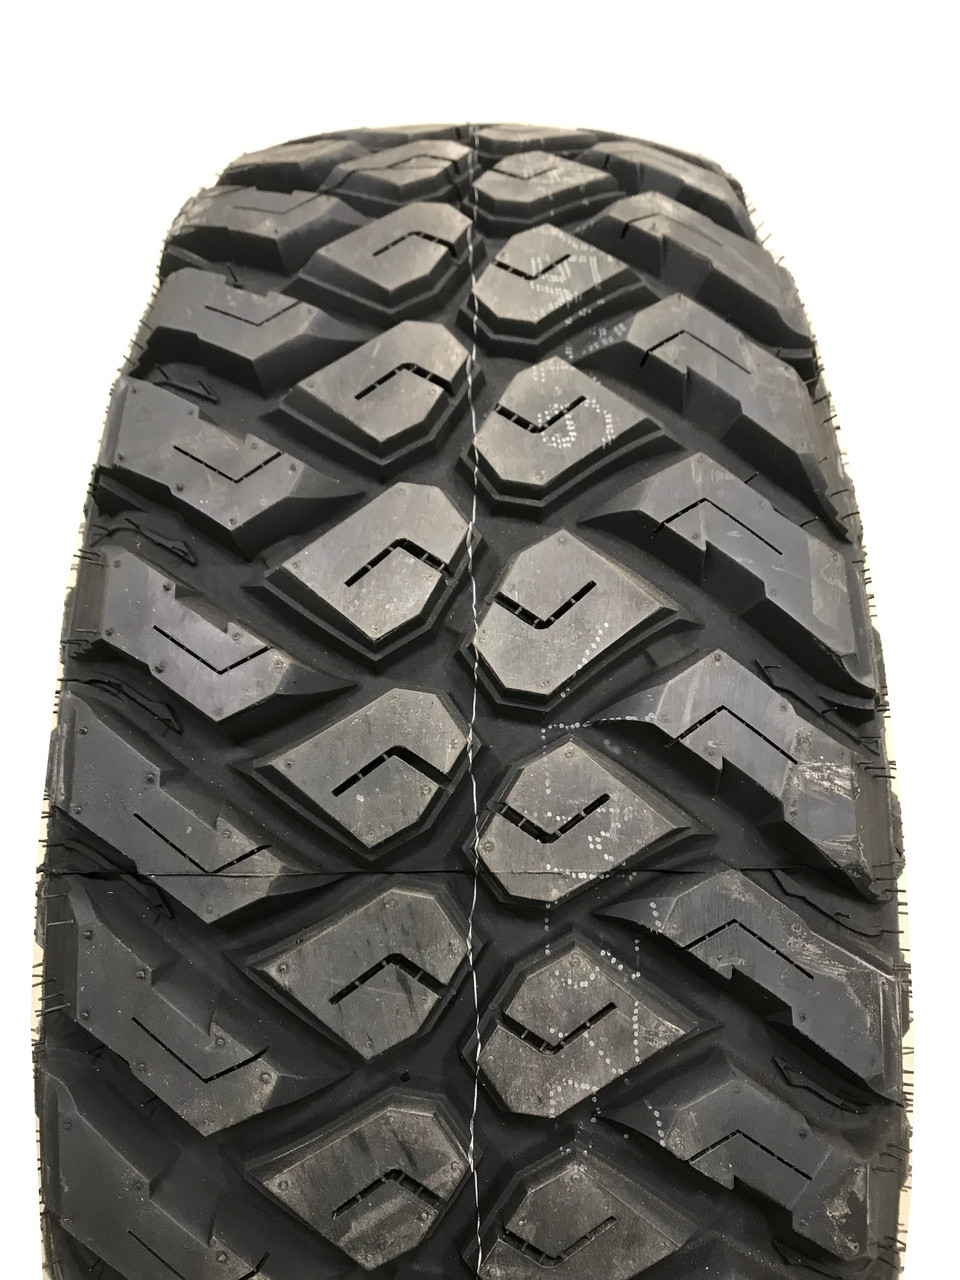 New Tire 285 75 16 Maxxis Razr MT Mud 10 Ply LT285/75R16 40,000 Mile Warranty